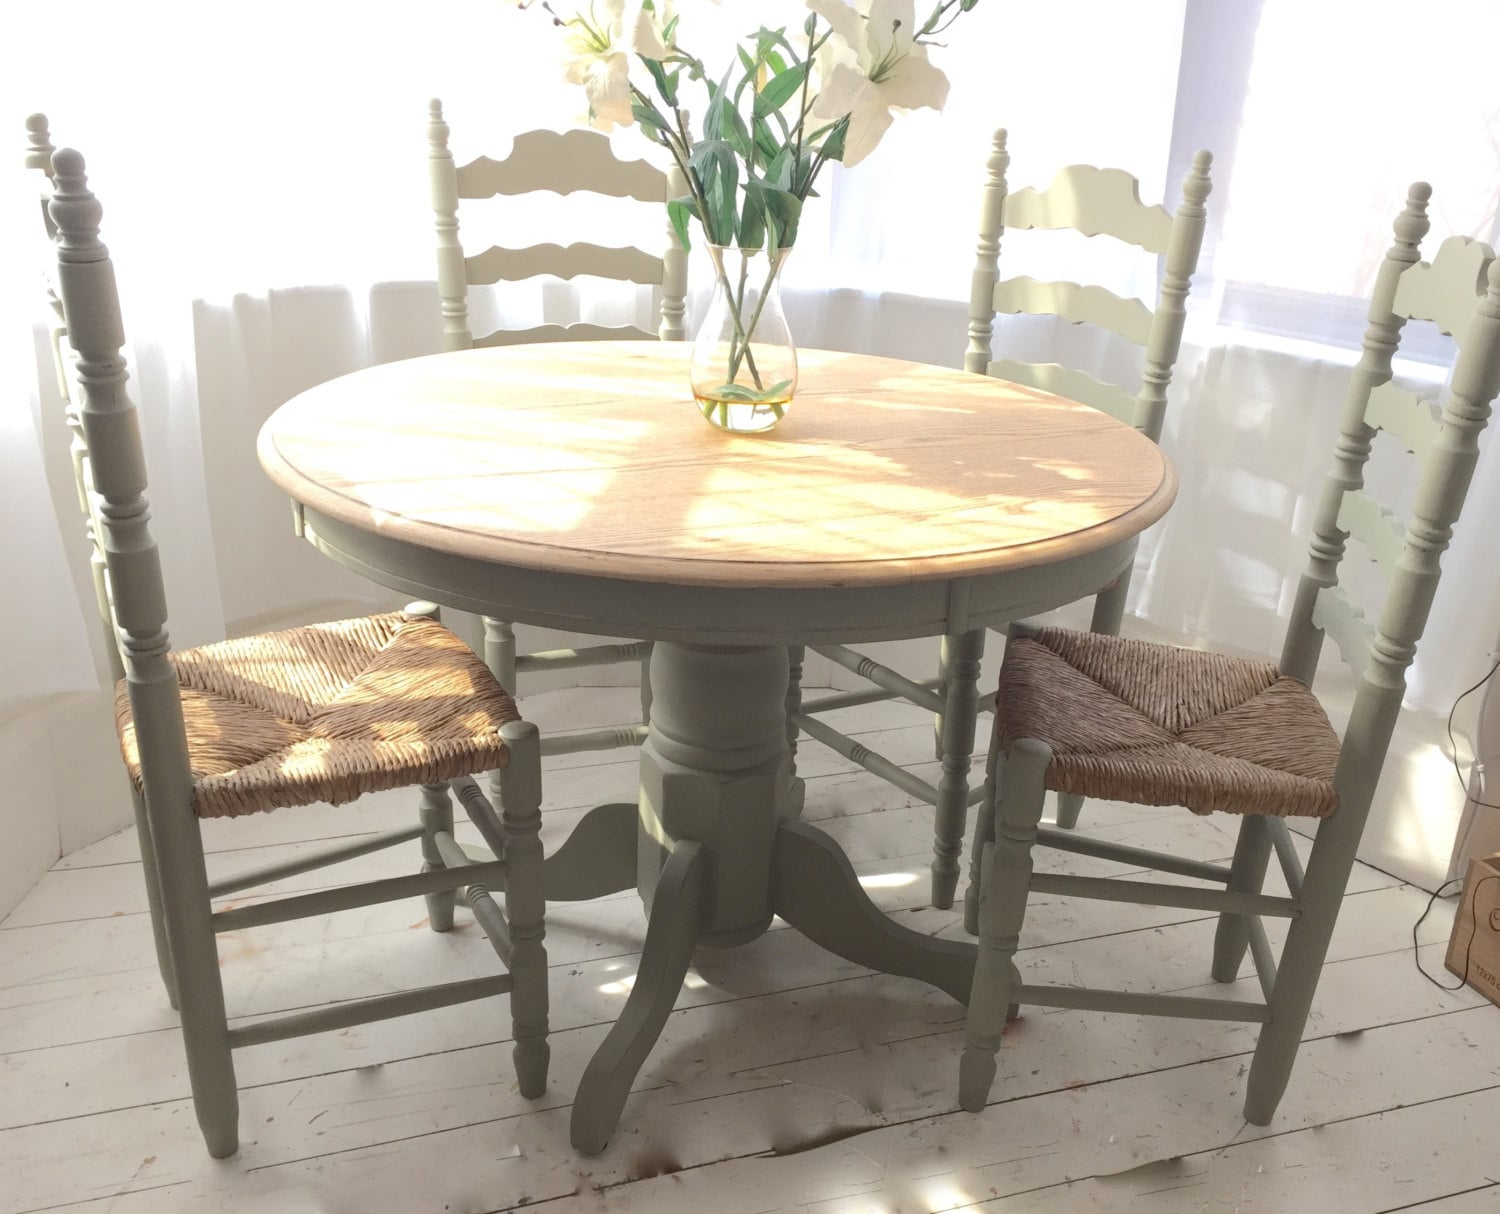 Sage Green French Country Oak Dining Set with Vintage Rush Seat Chairs u2013 Haute Juice